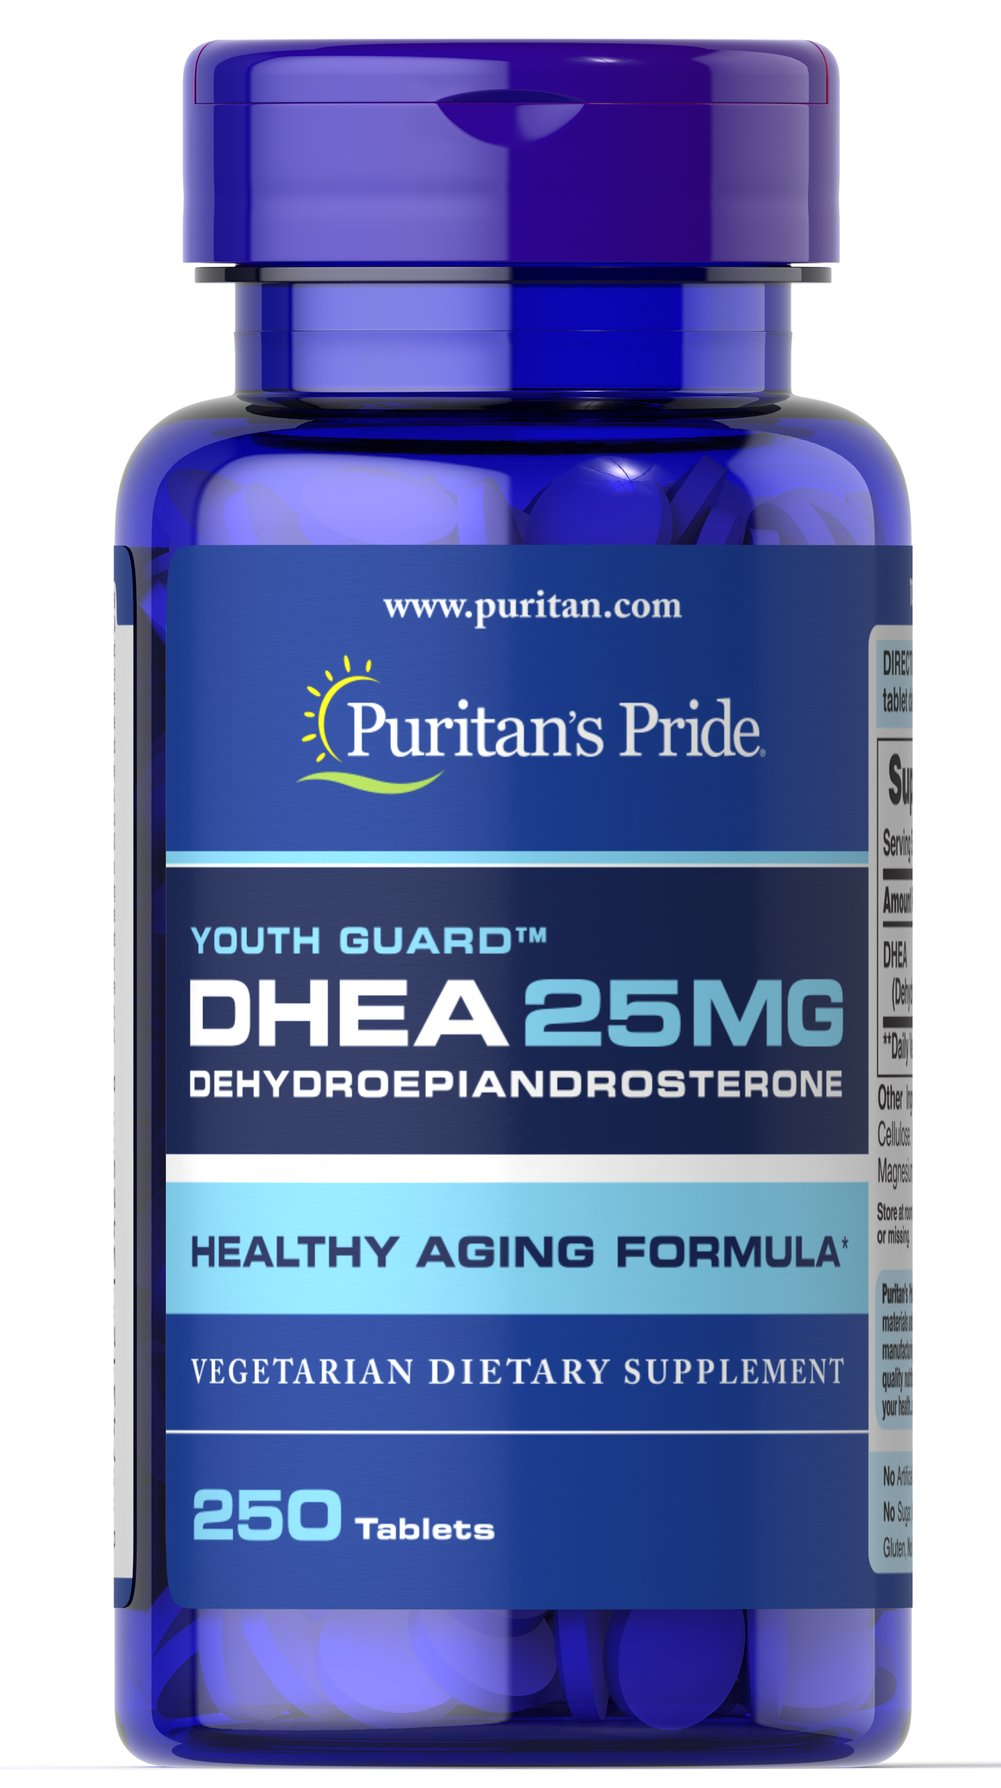 DHEA 25 mg Thumbnail Alternate Bottle View